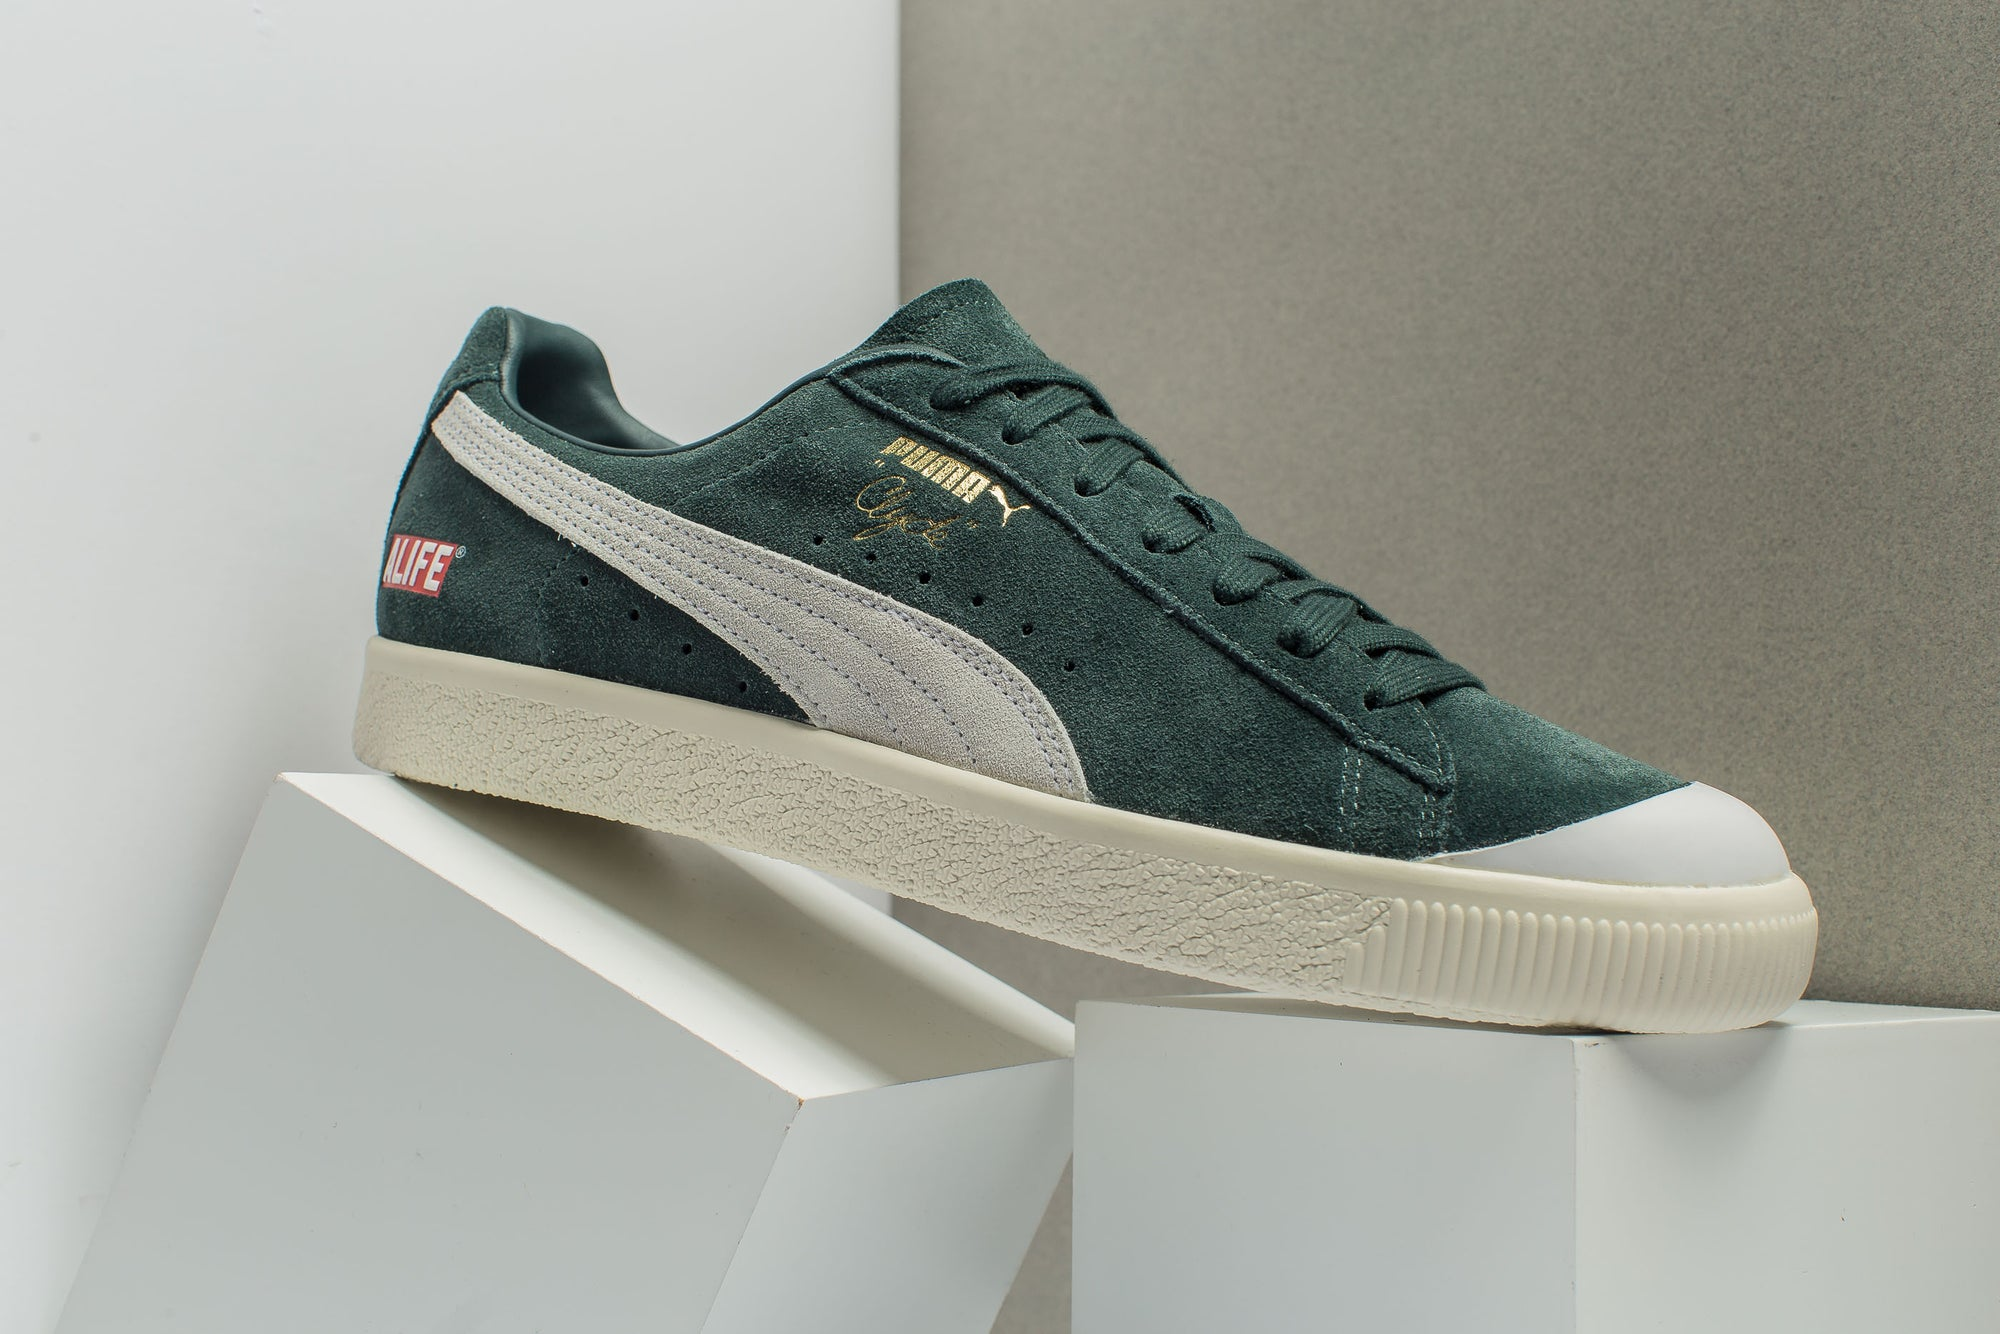 remise d5aa4 00a0d PUMA CLYDE RUBBER TOE ALIFE